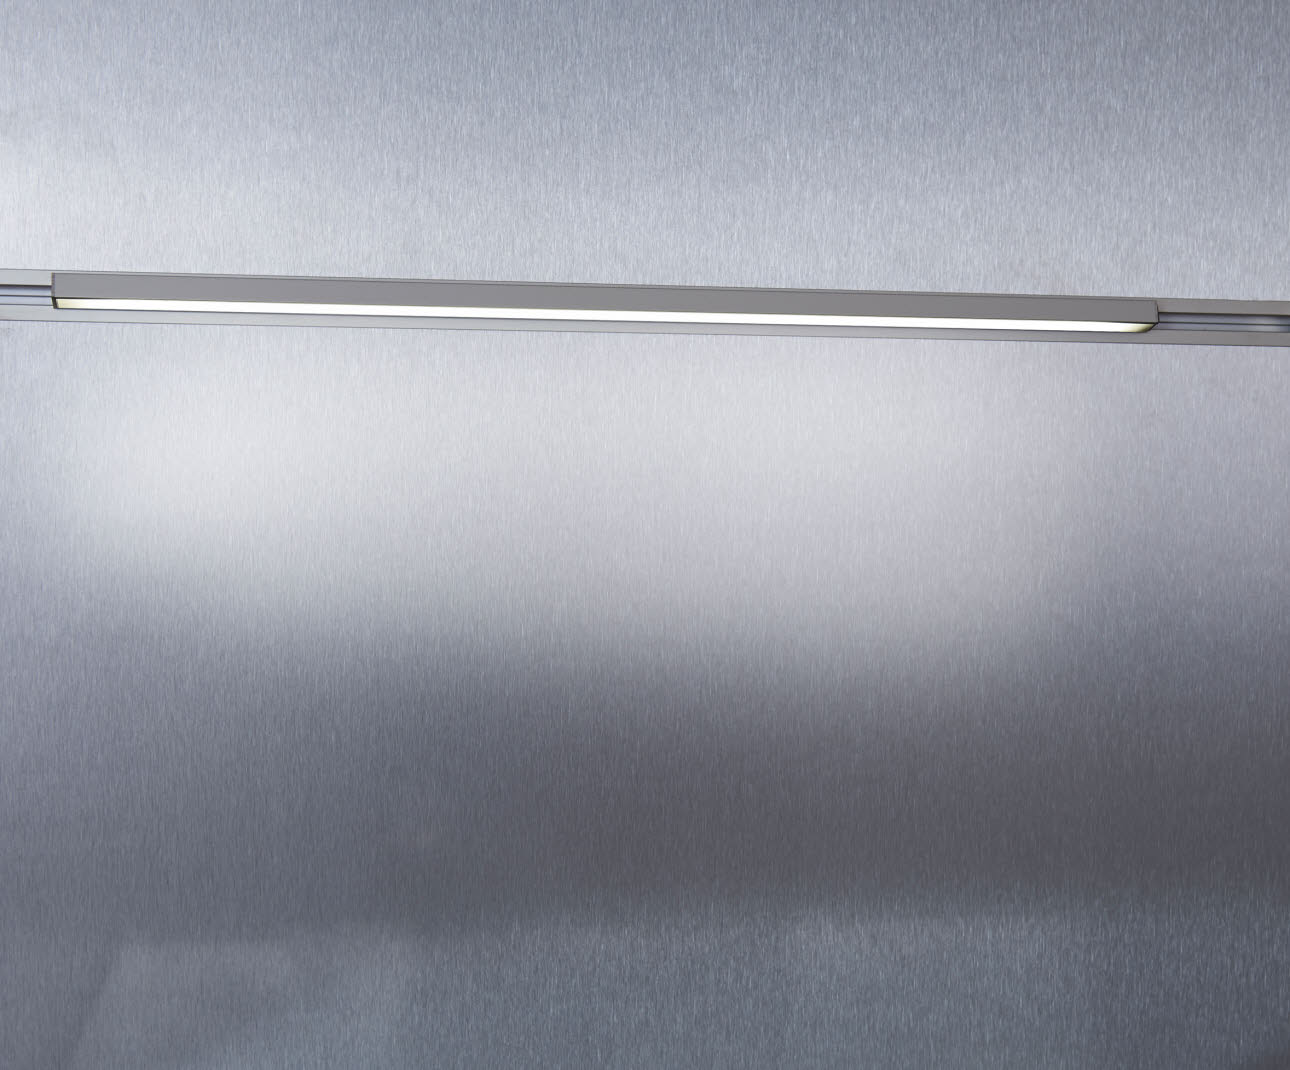 LED light profile - overall view 1